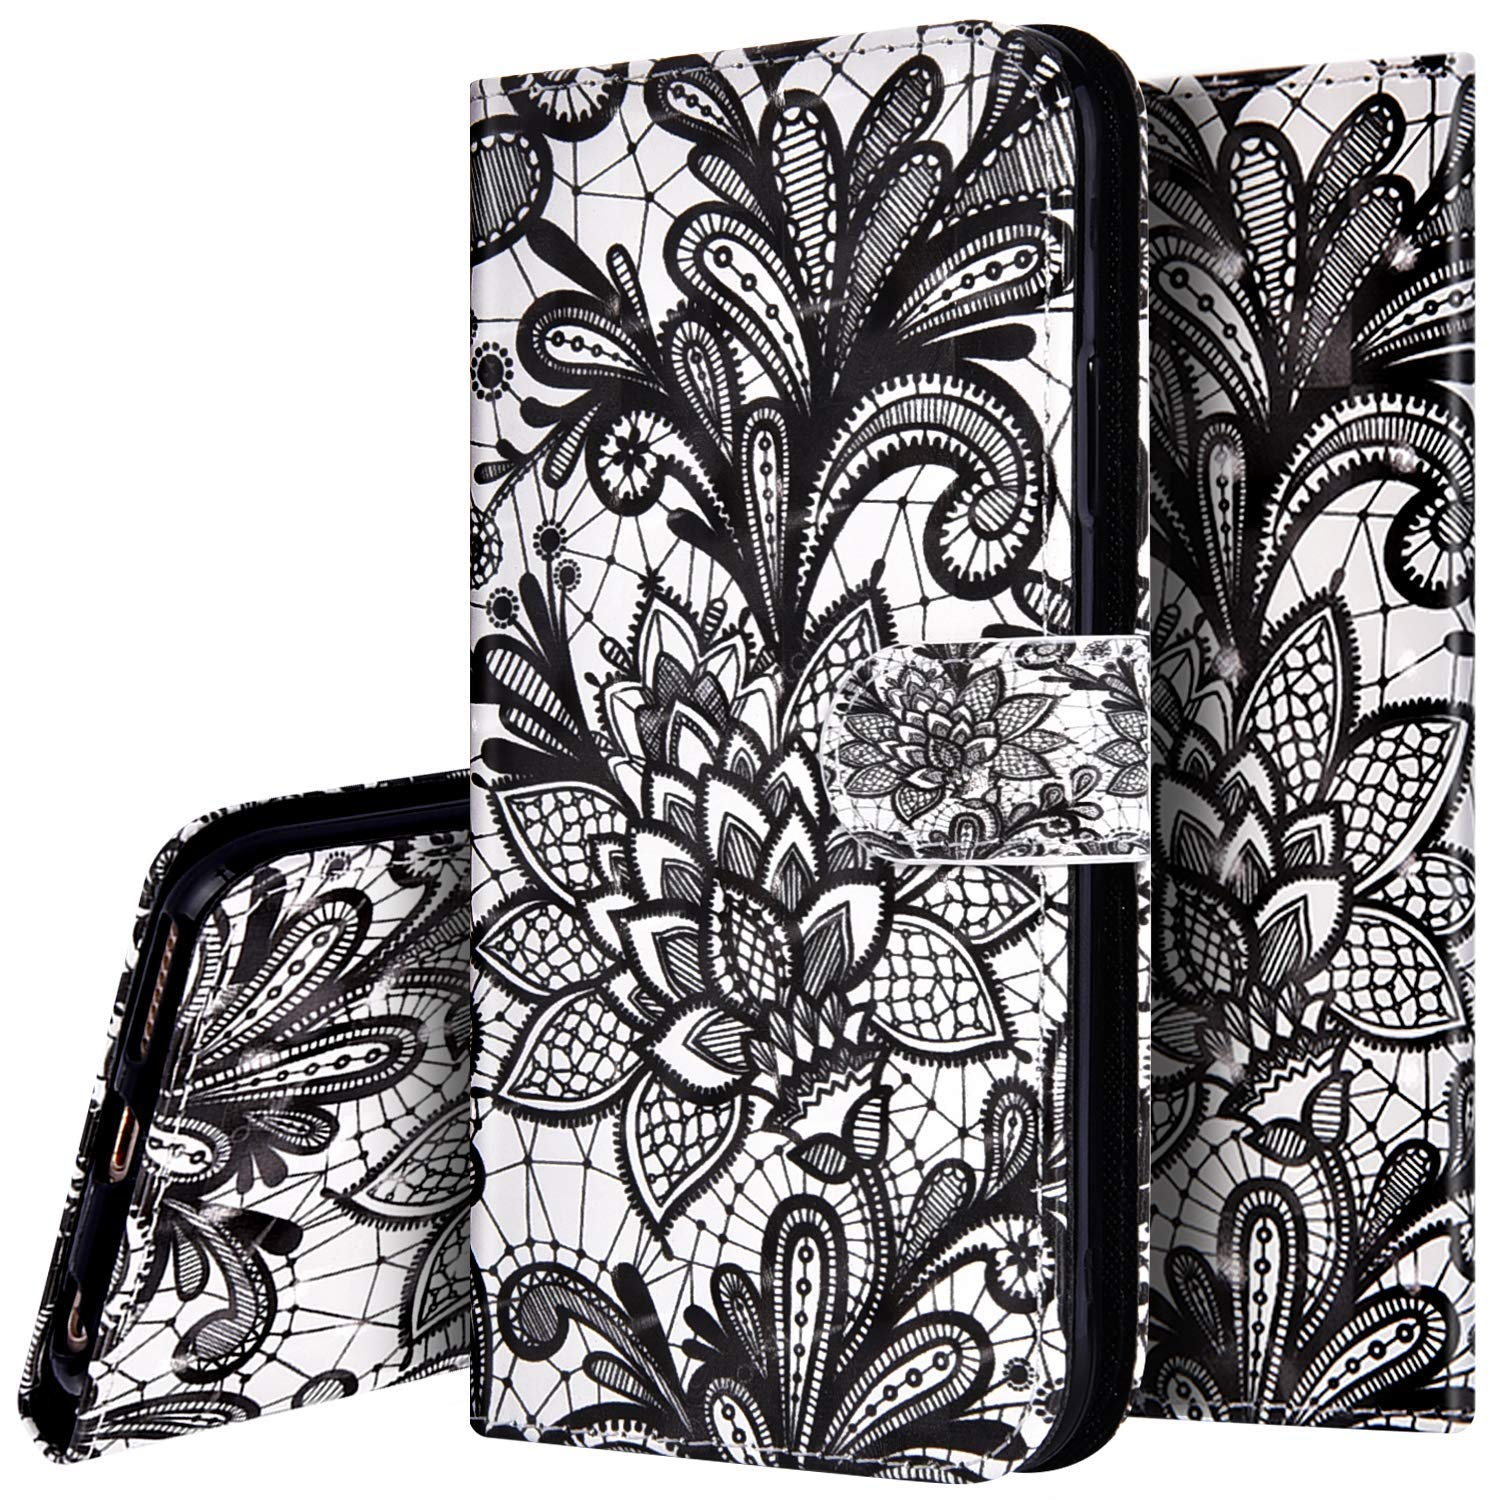 PHEZEN Case for Samsung Galaxy Note 9 Wallet Case,3D Bling PU Leather Folio Flip Case Full Body Protective Phone Case Cover with Kickstand Credit Card Wrist Strap for Galaxy Note 9 - Black Flower by PHEZEN